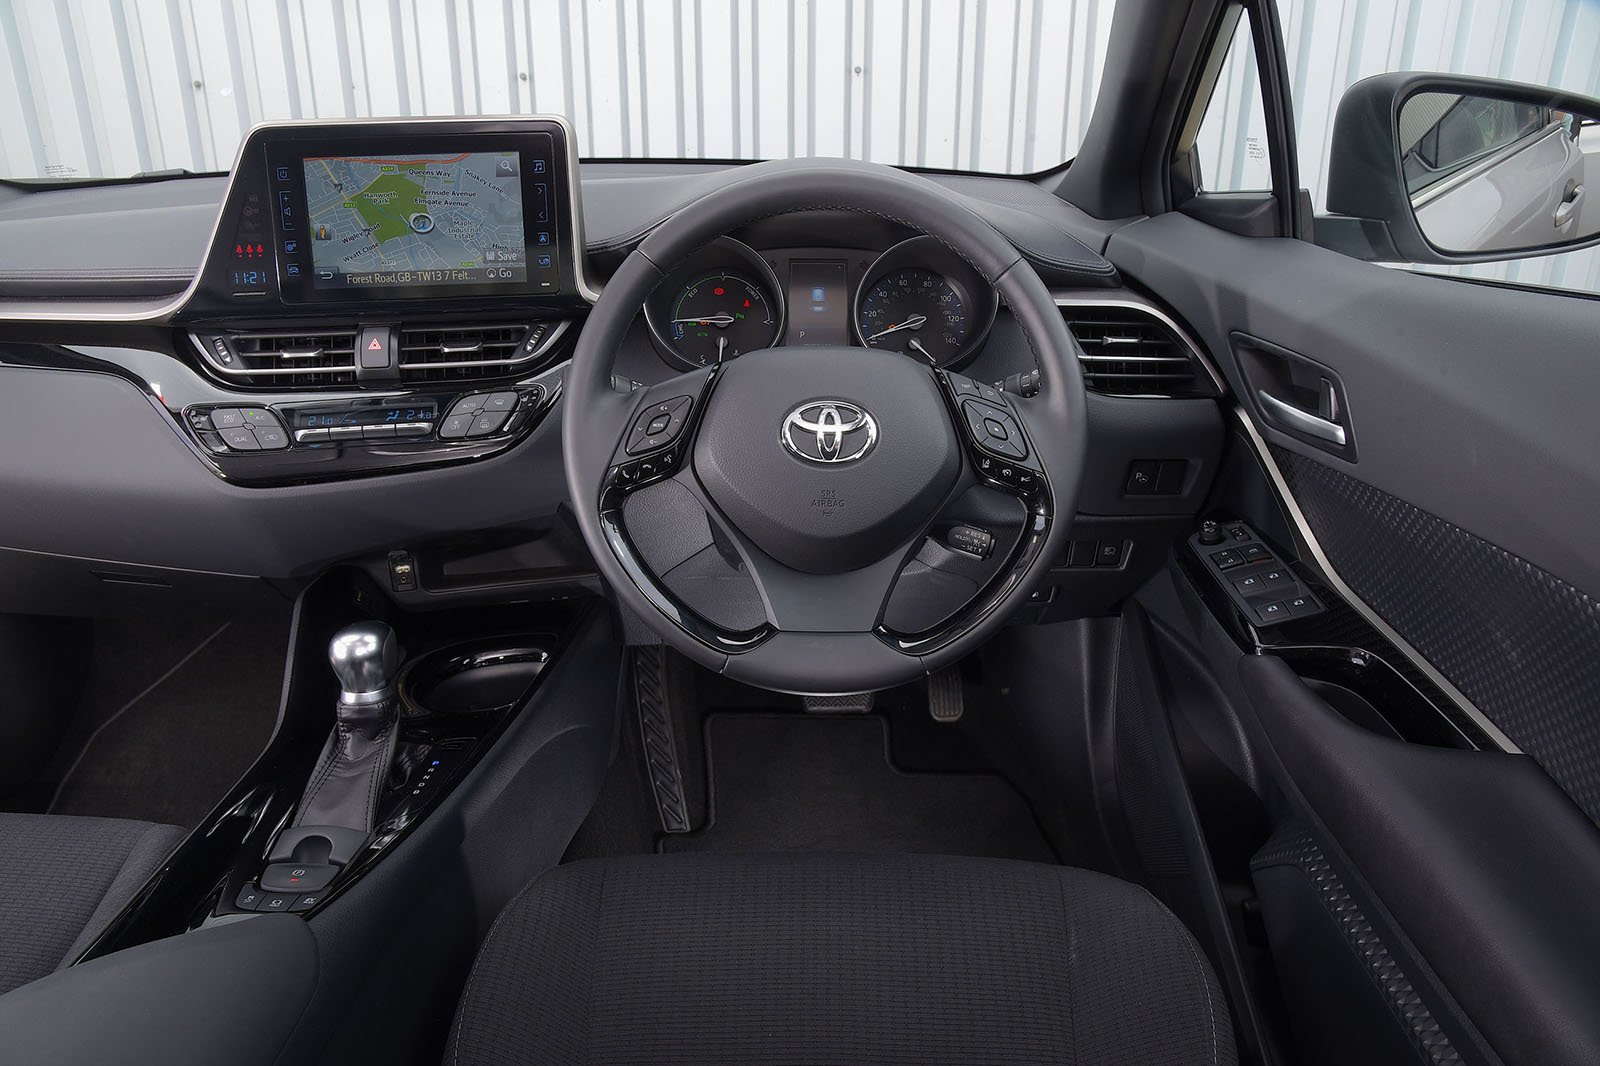 Toyota C-HR 1.8 Hybrid Icon CVT - interior